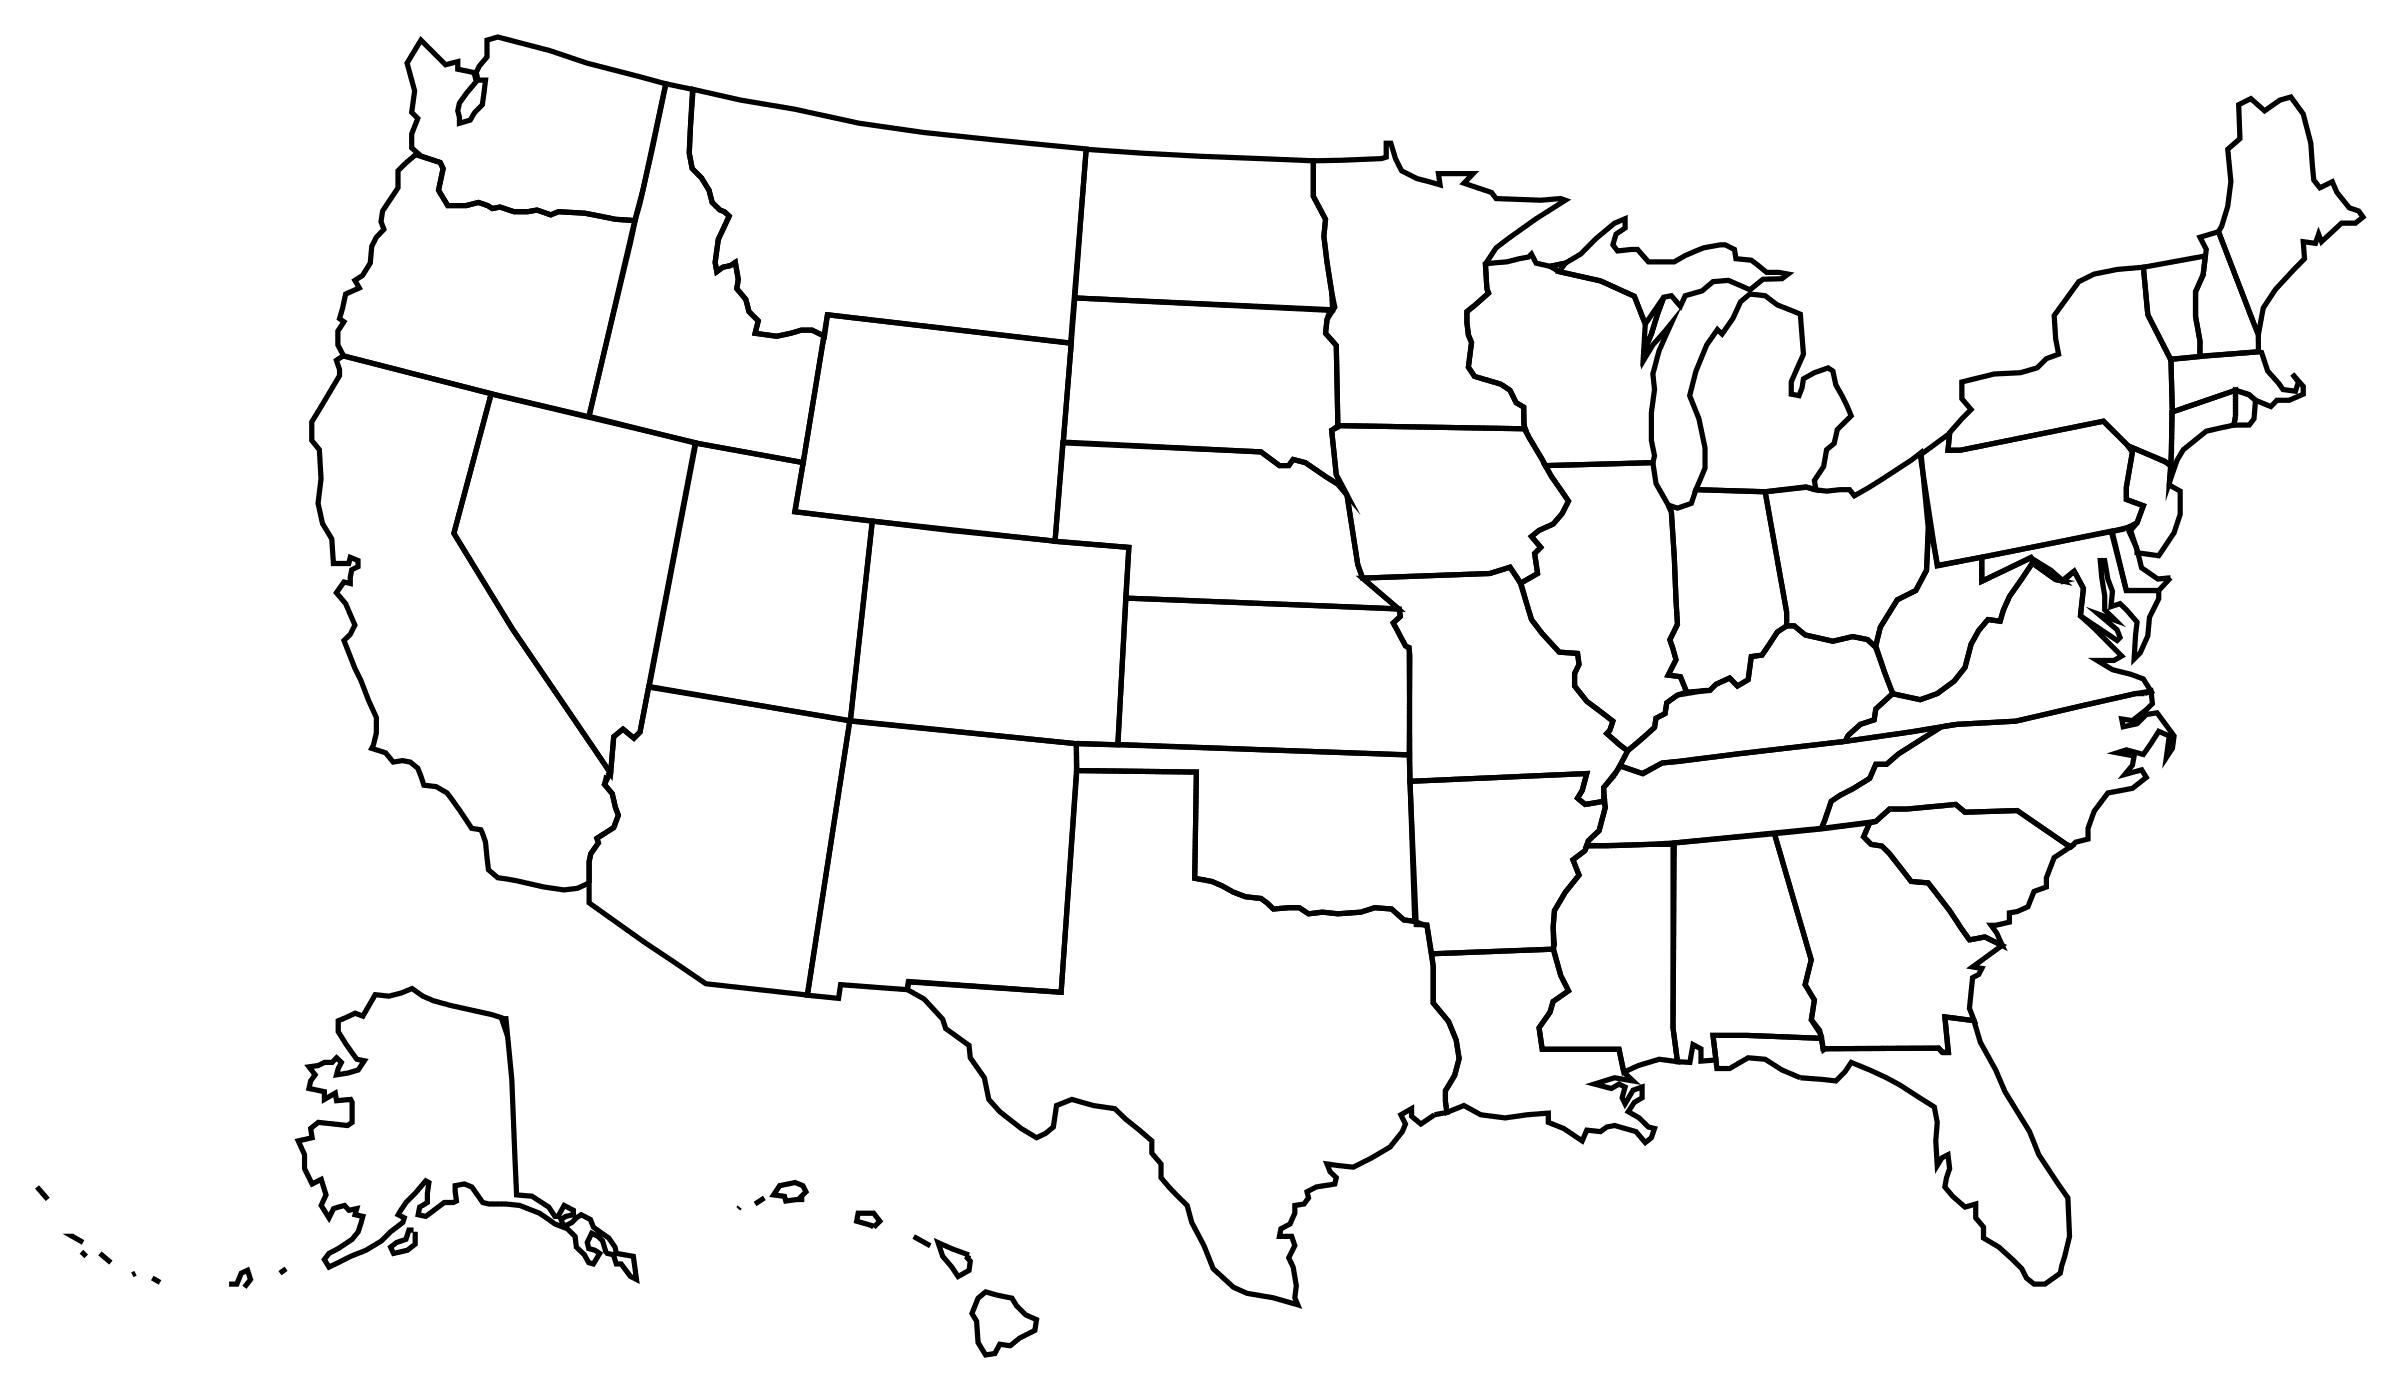 Map Of Us Png Download Us Map Silhouette Png | PNG & GIF BASE